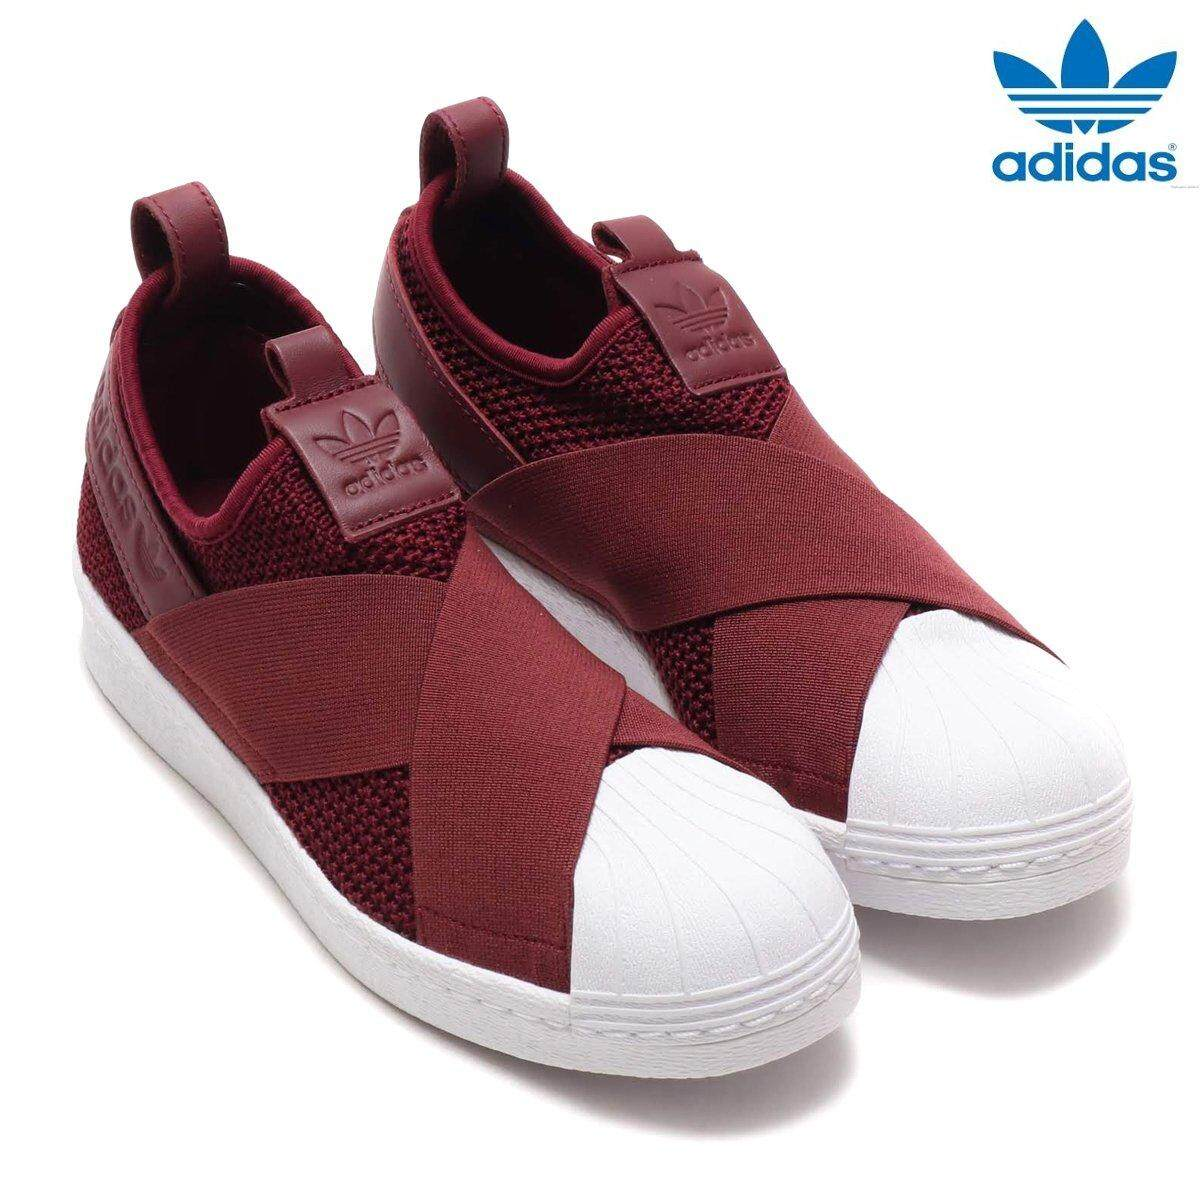 e3e8b519e Adidas New Originals Superstar Slip-on B37371 Red Night Shoes